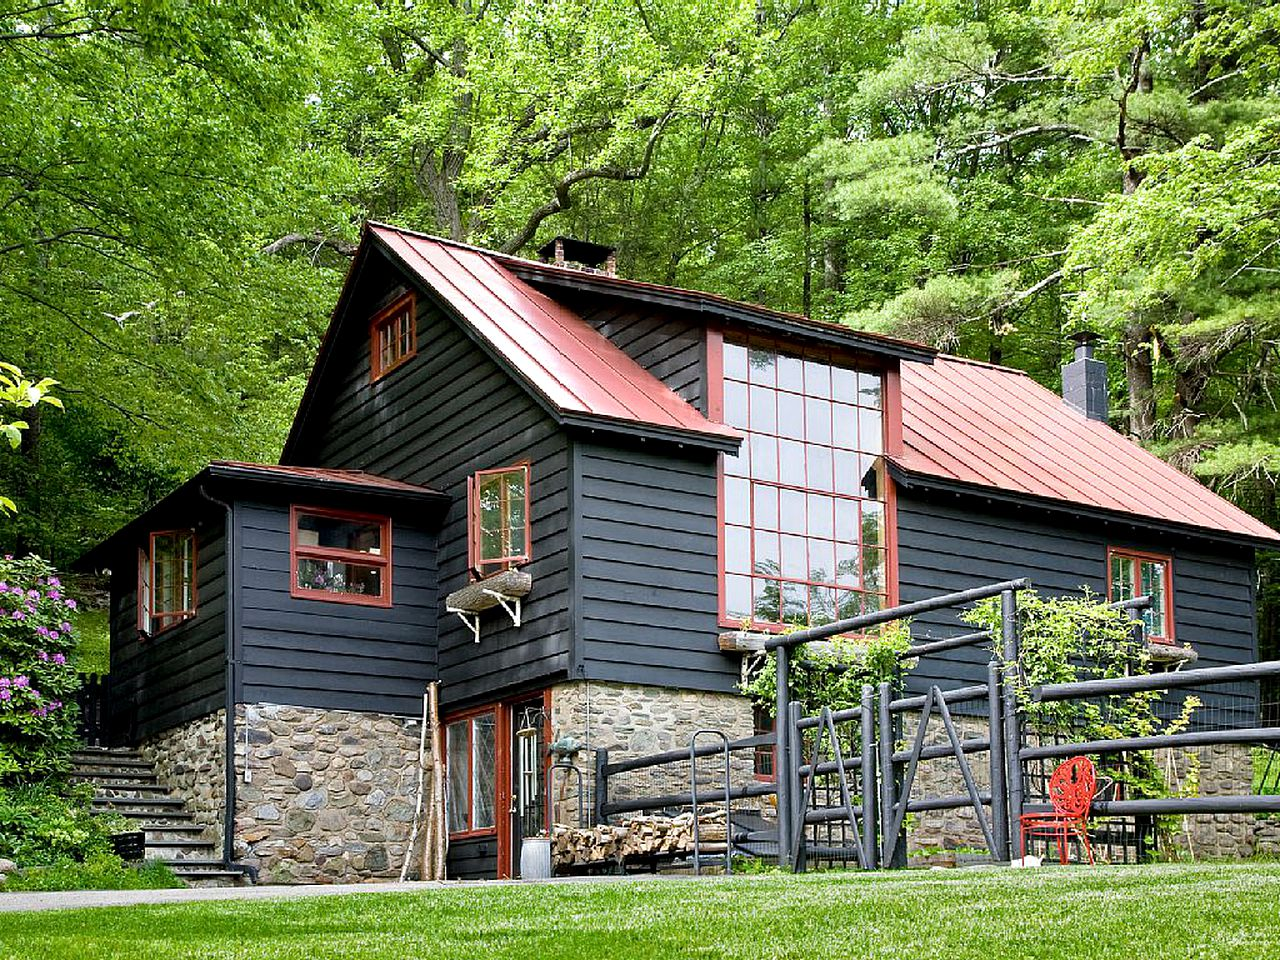 Cabins (Mount Tremper, New York, United States)